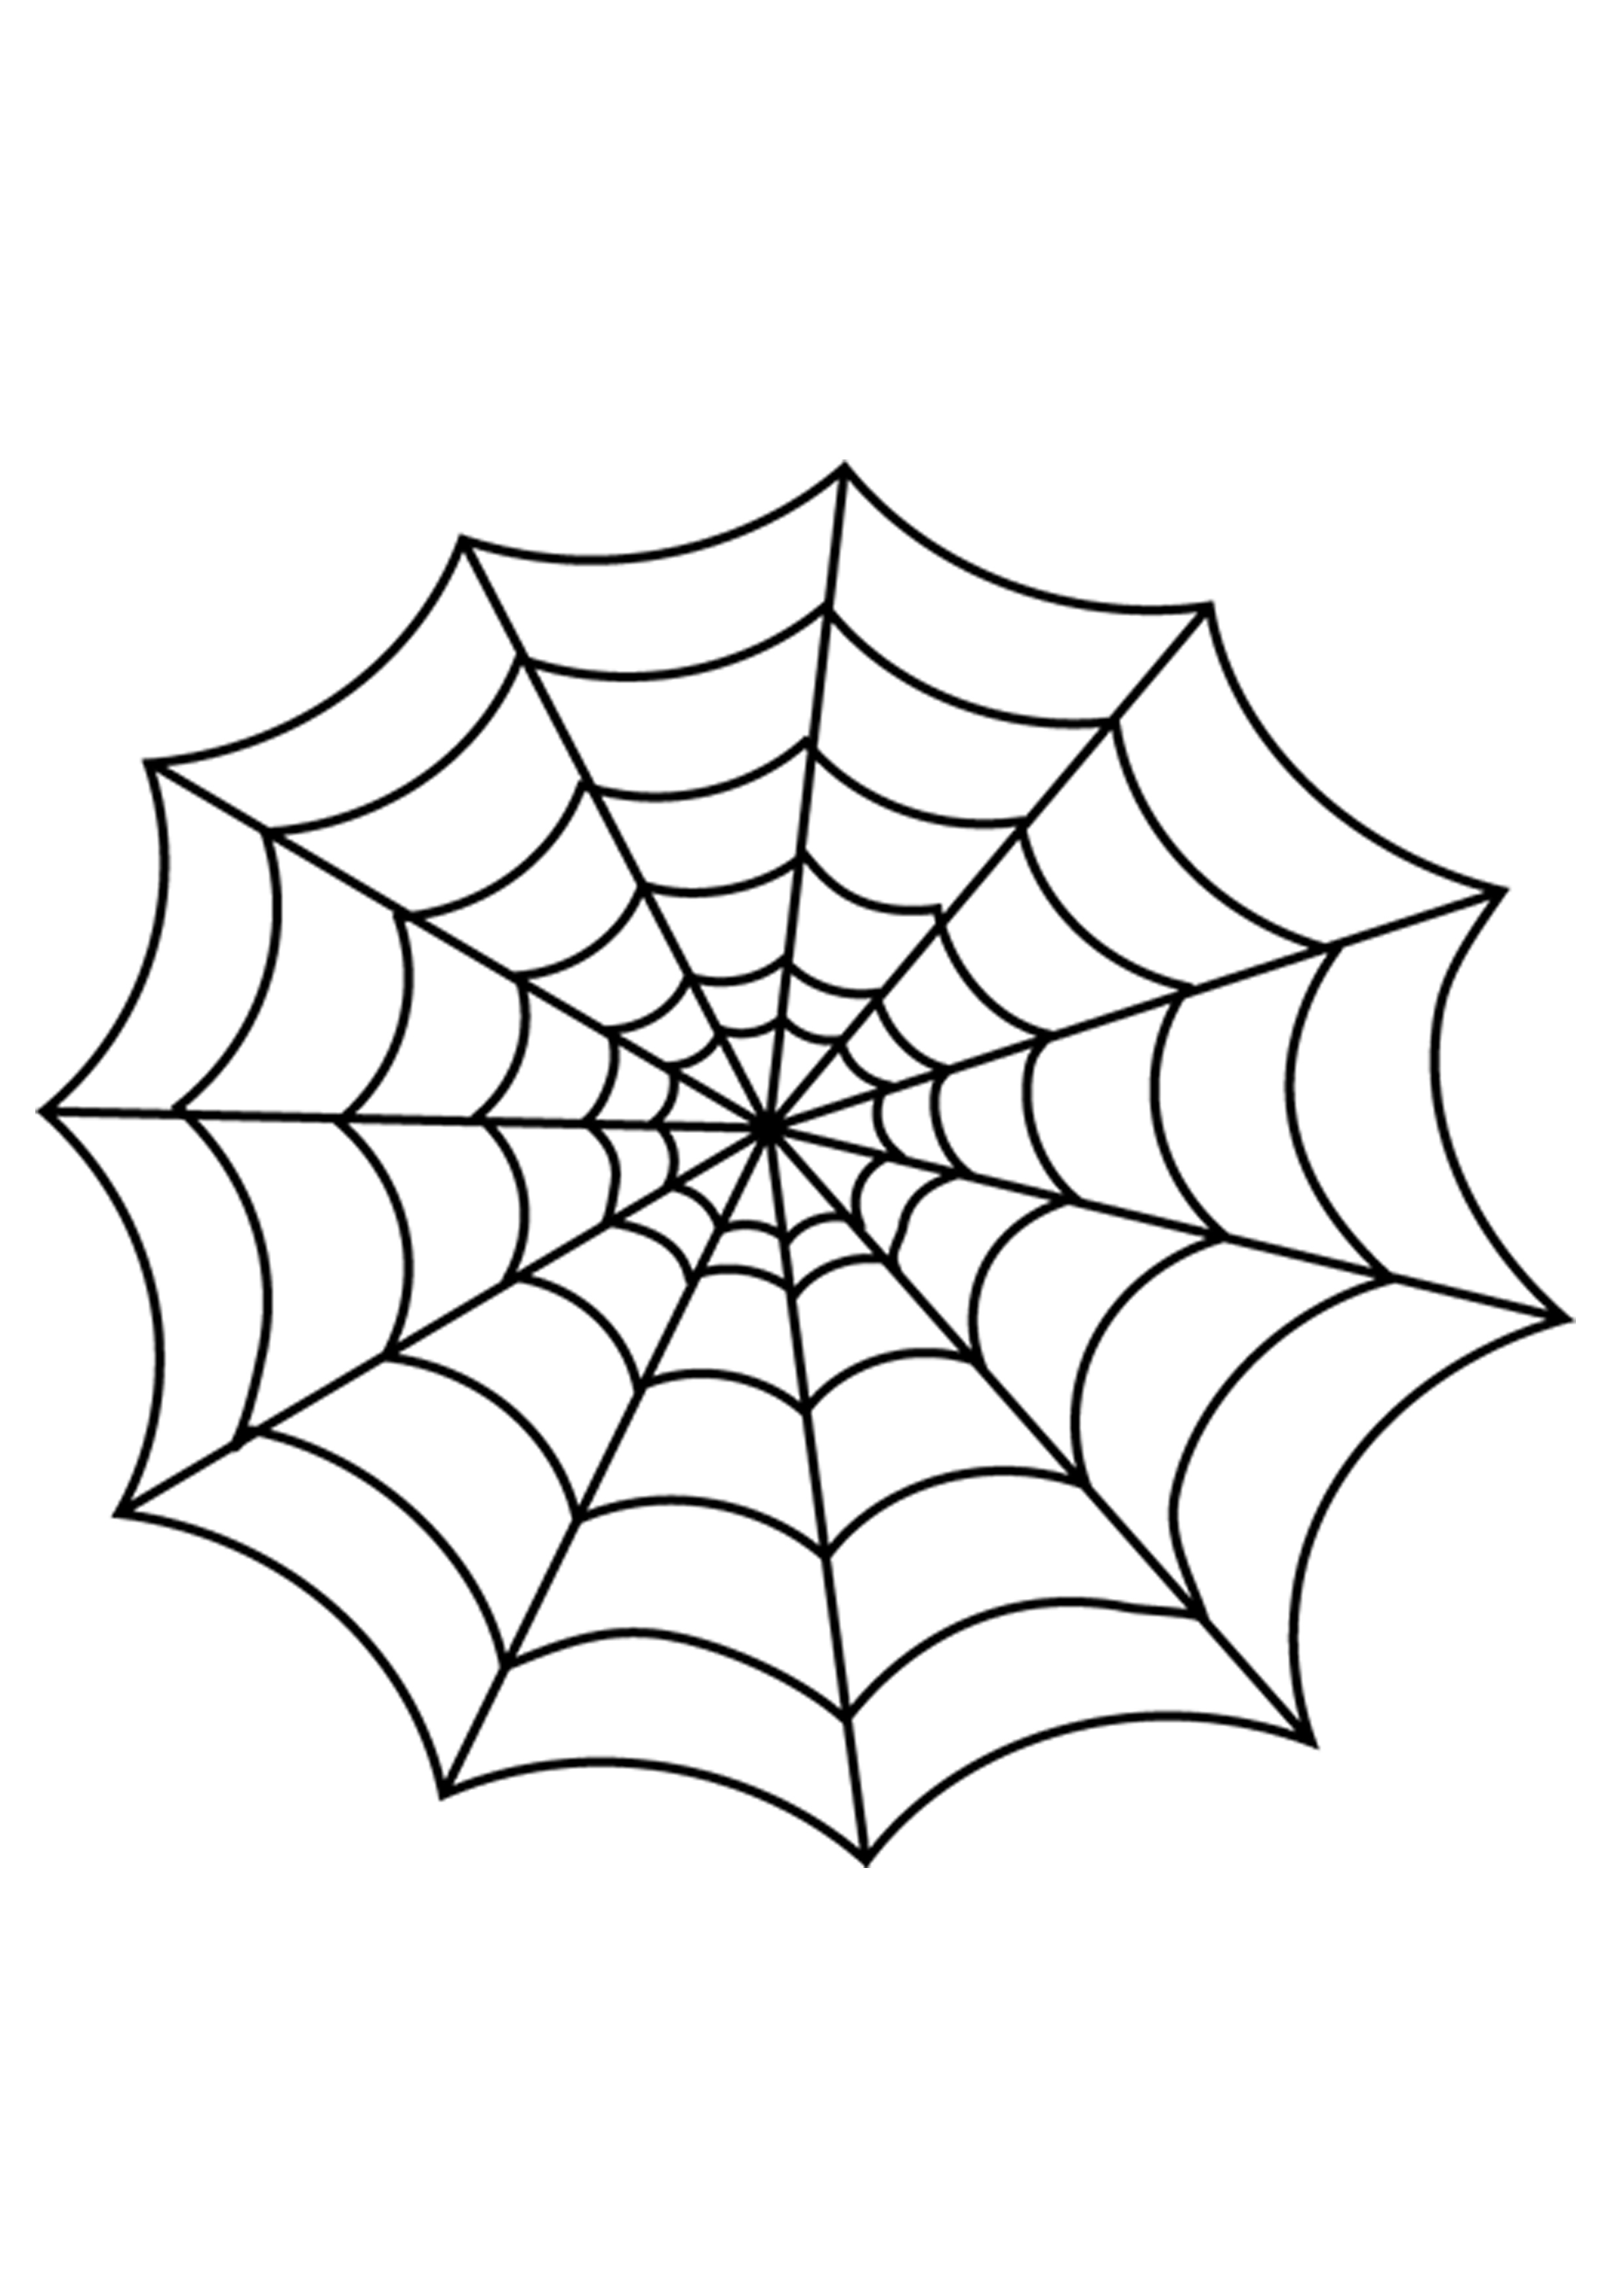 Halloween Spider Webs To Printable To | Clipart Crossword - Free Printable Spider Web